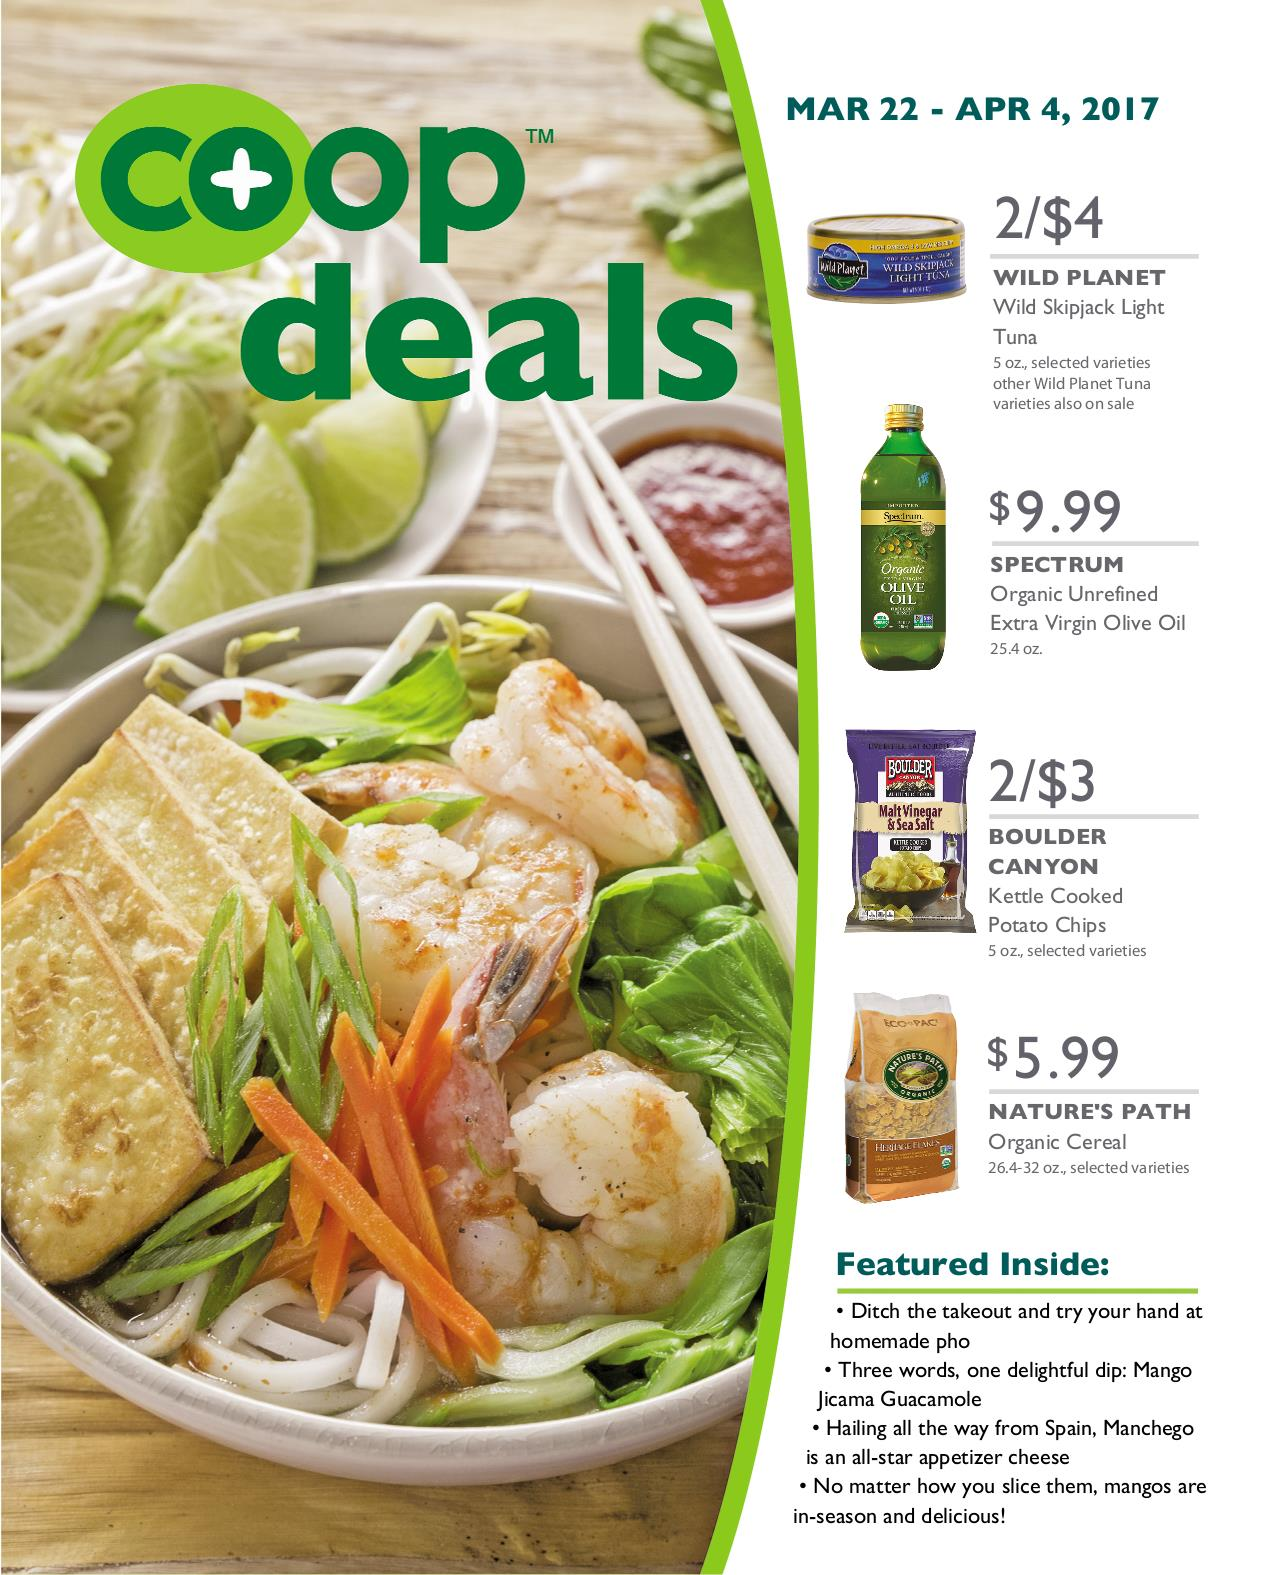 Co+op Deals March 2017 - Flyer B